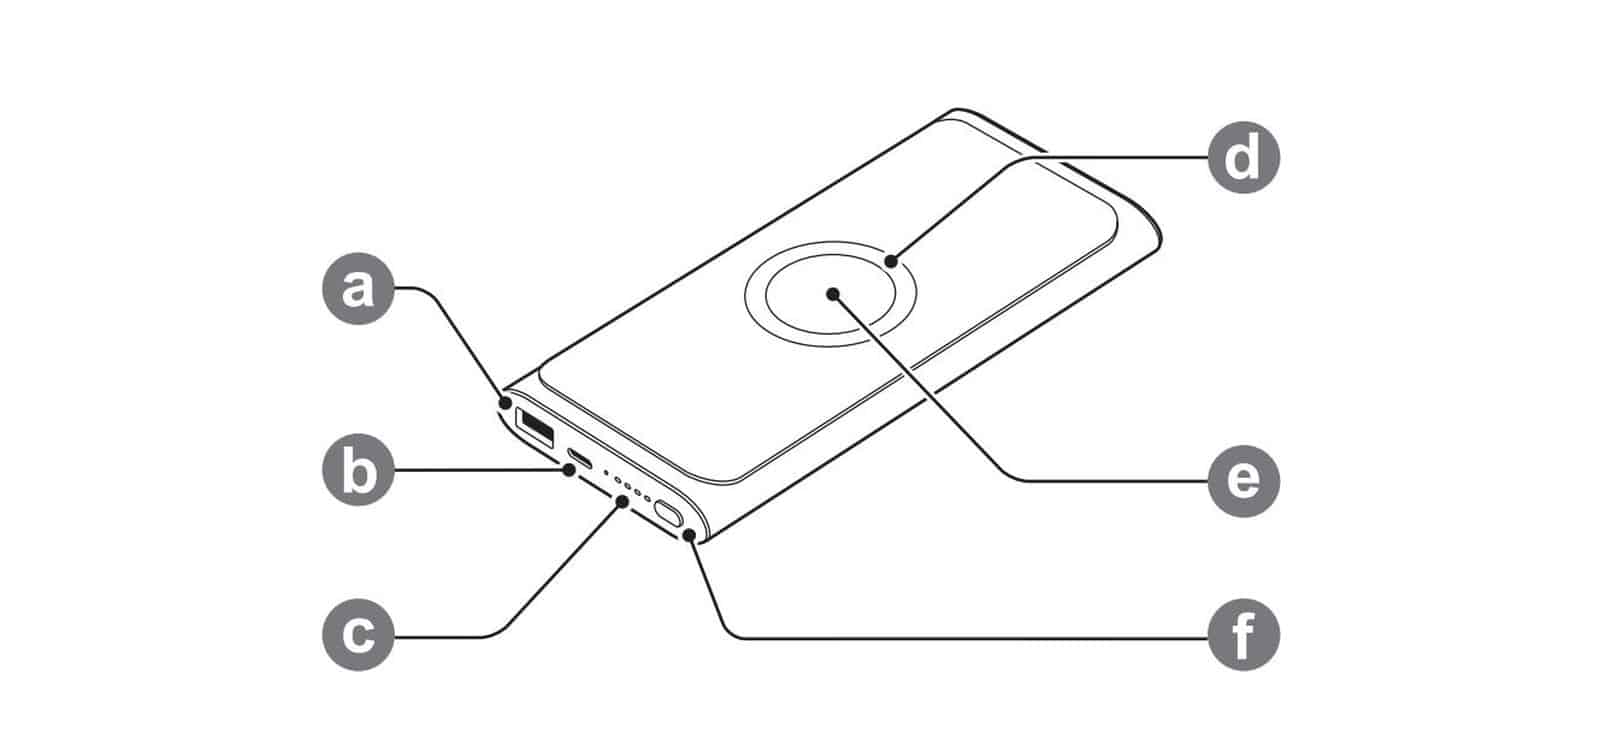 Samsung Is Developing A Wireless Power Bank, FCC Docs Reveal